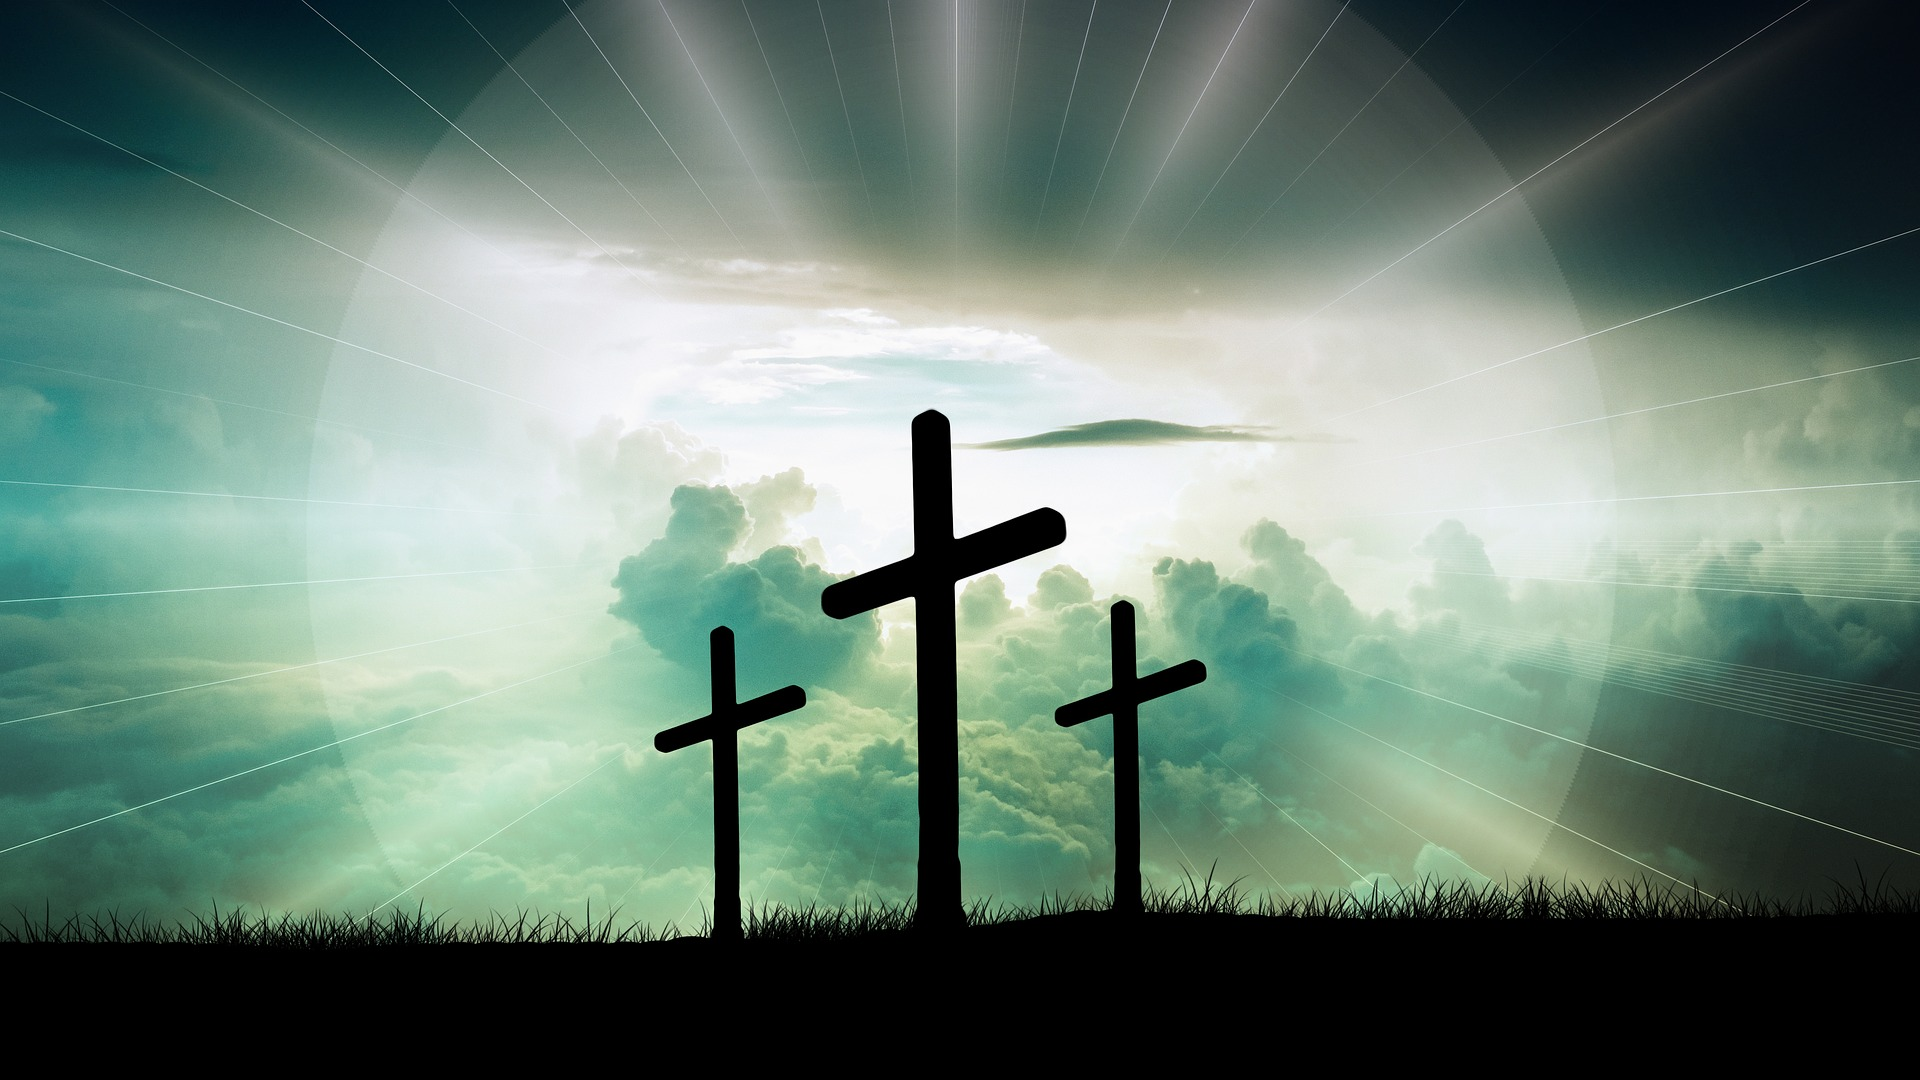 April 2nd – Good Friday